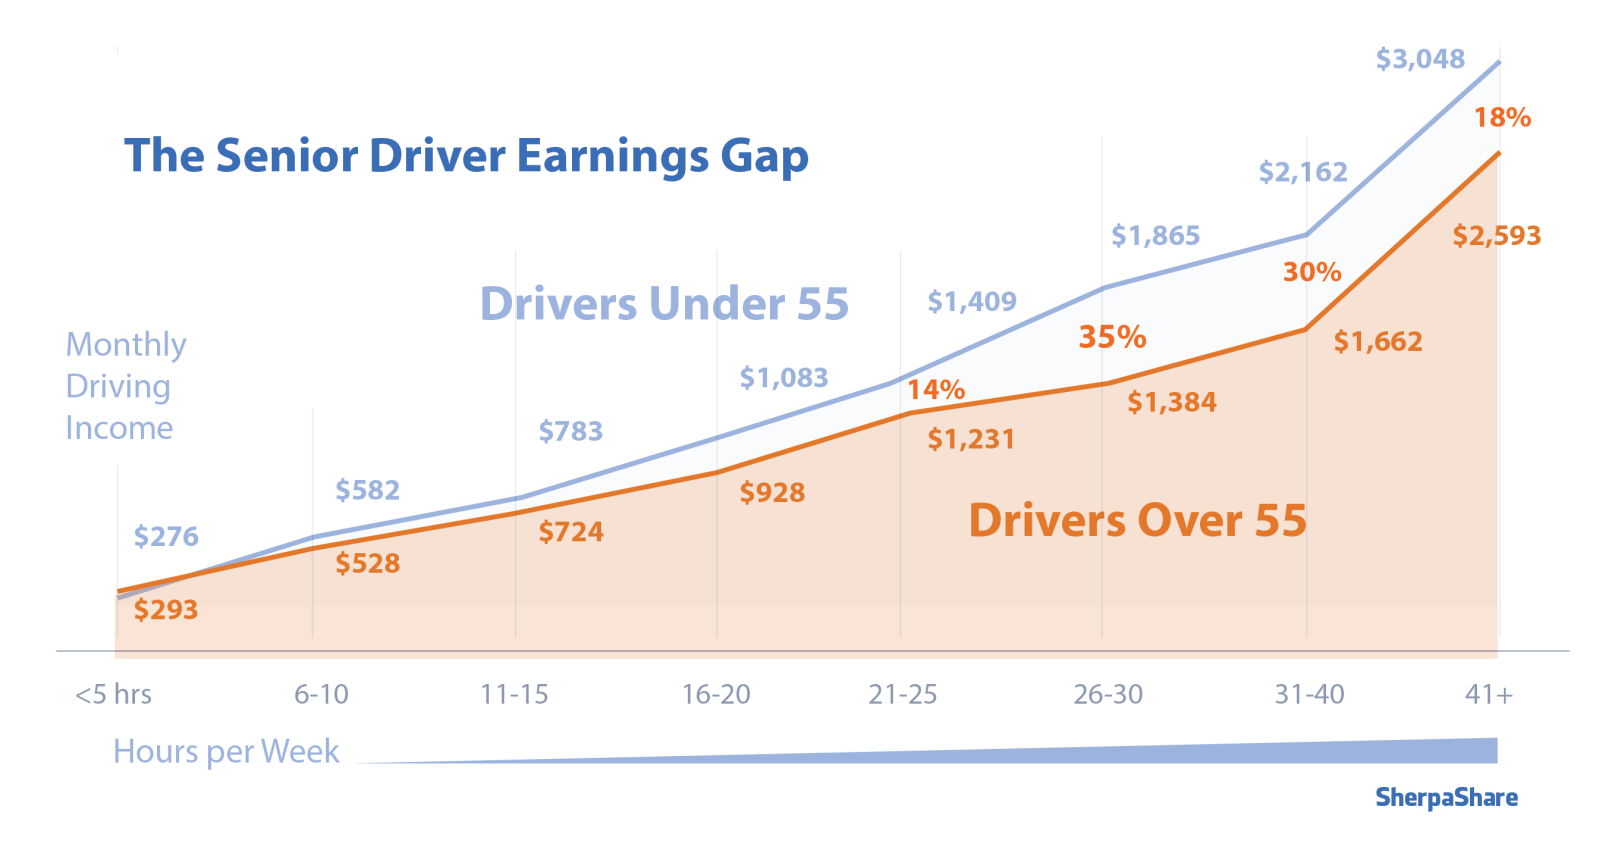 Uber and Lyft drivers earning gap